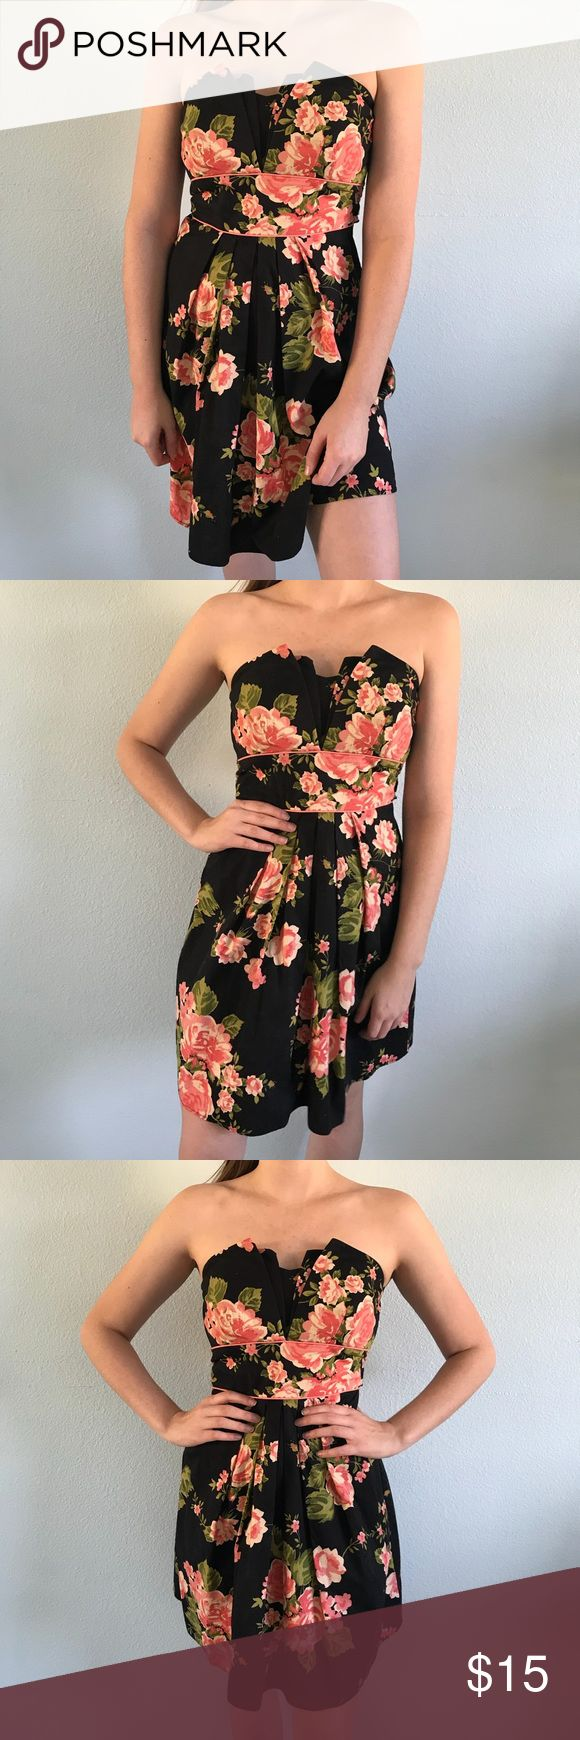 Black Floral Dress Strapless, Floral Pattern Bow in the back Perfect for a special occasion!! Worn once B. SMART Dresses Strapless